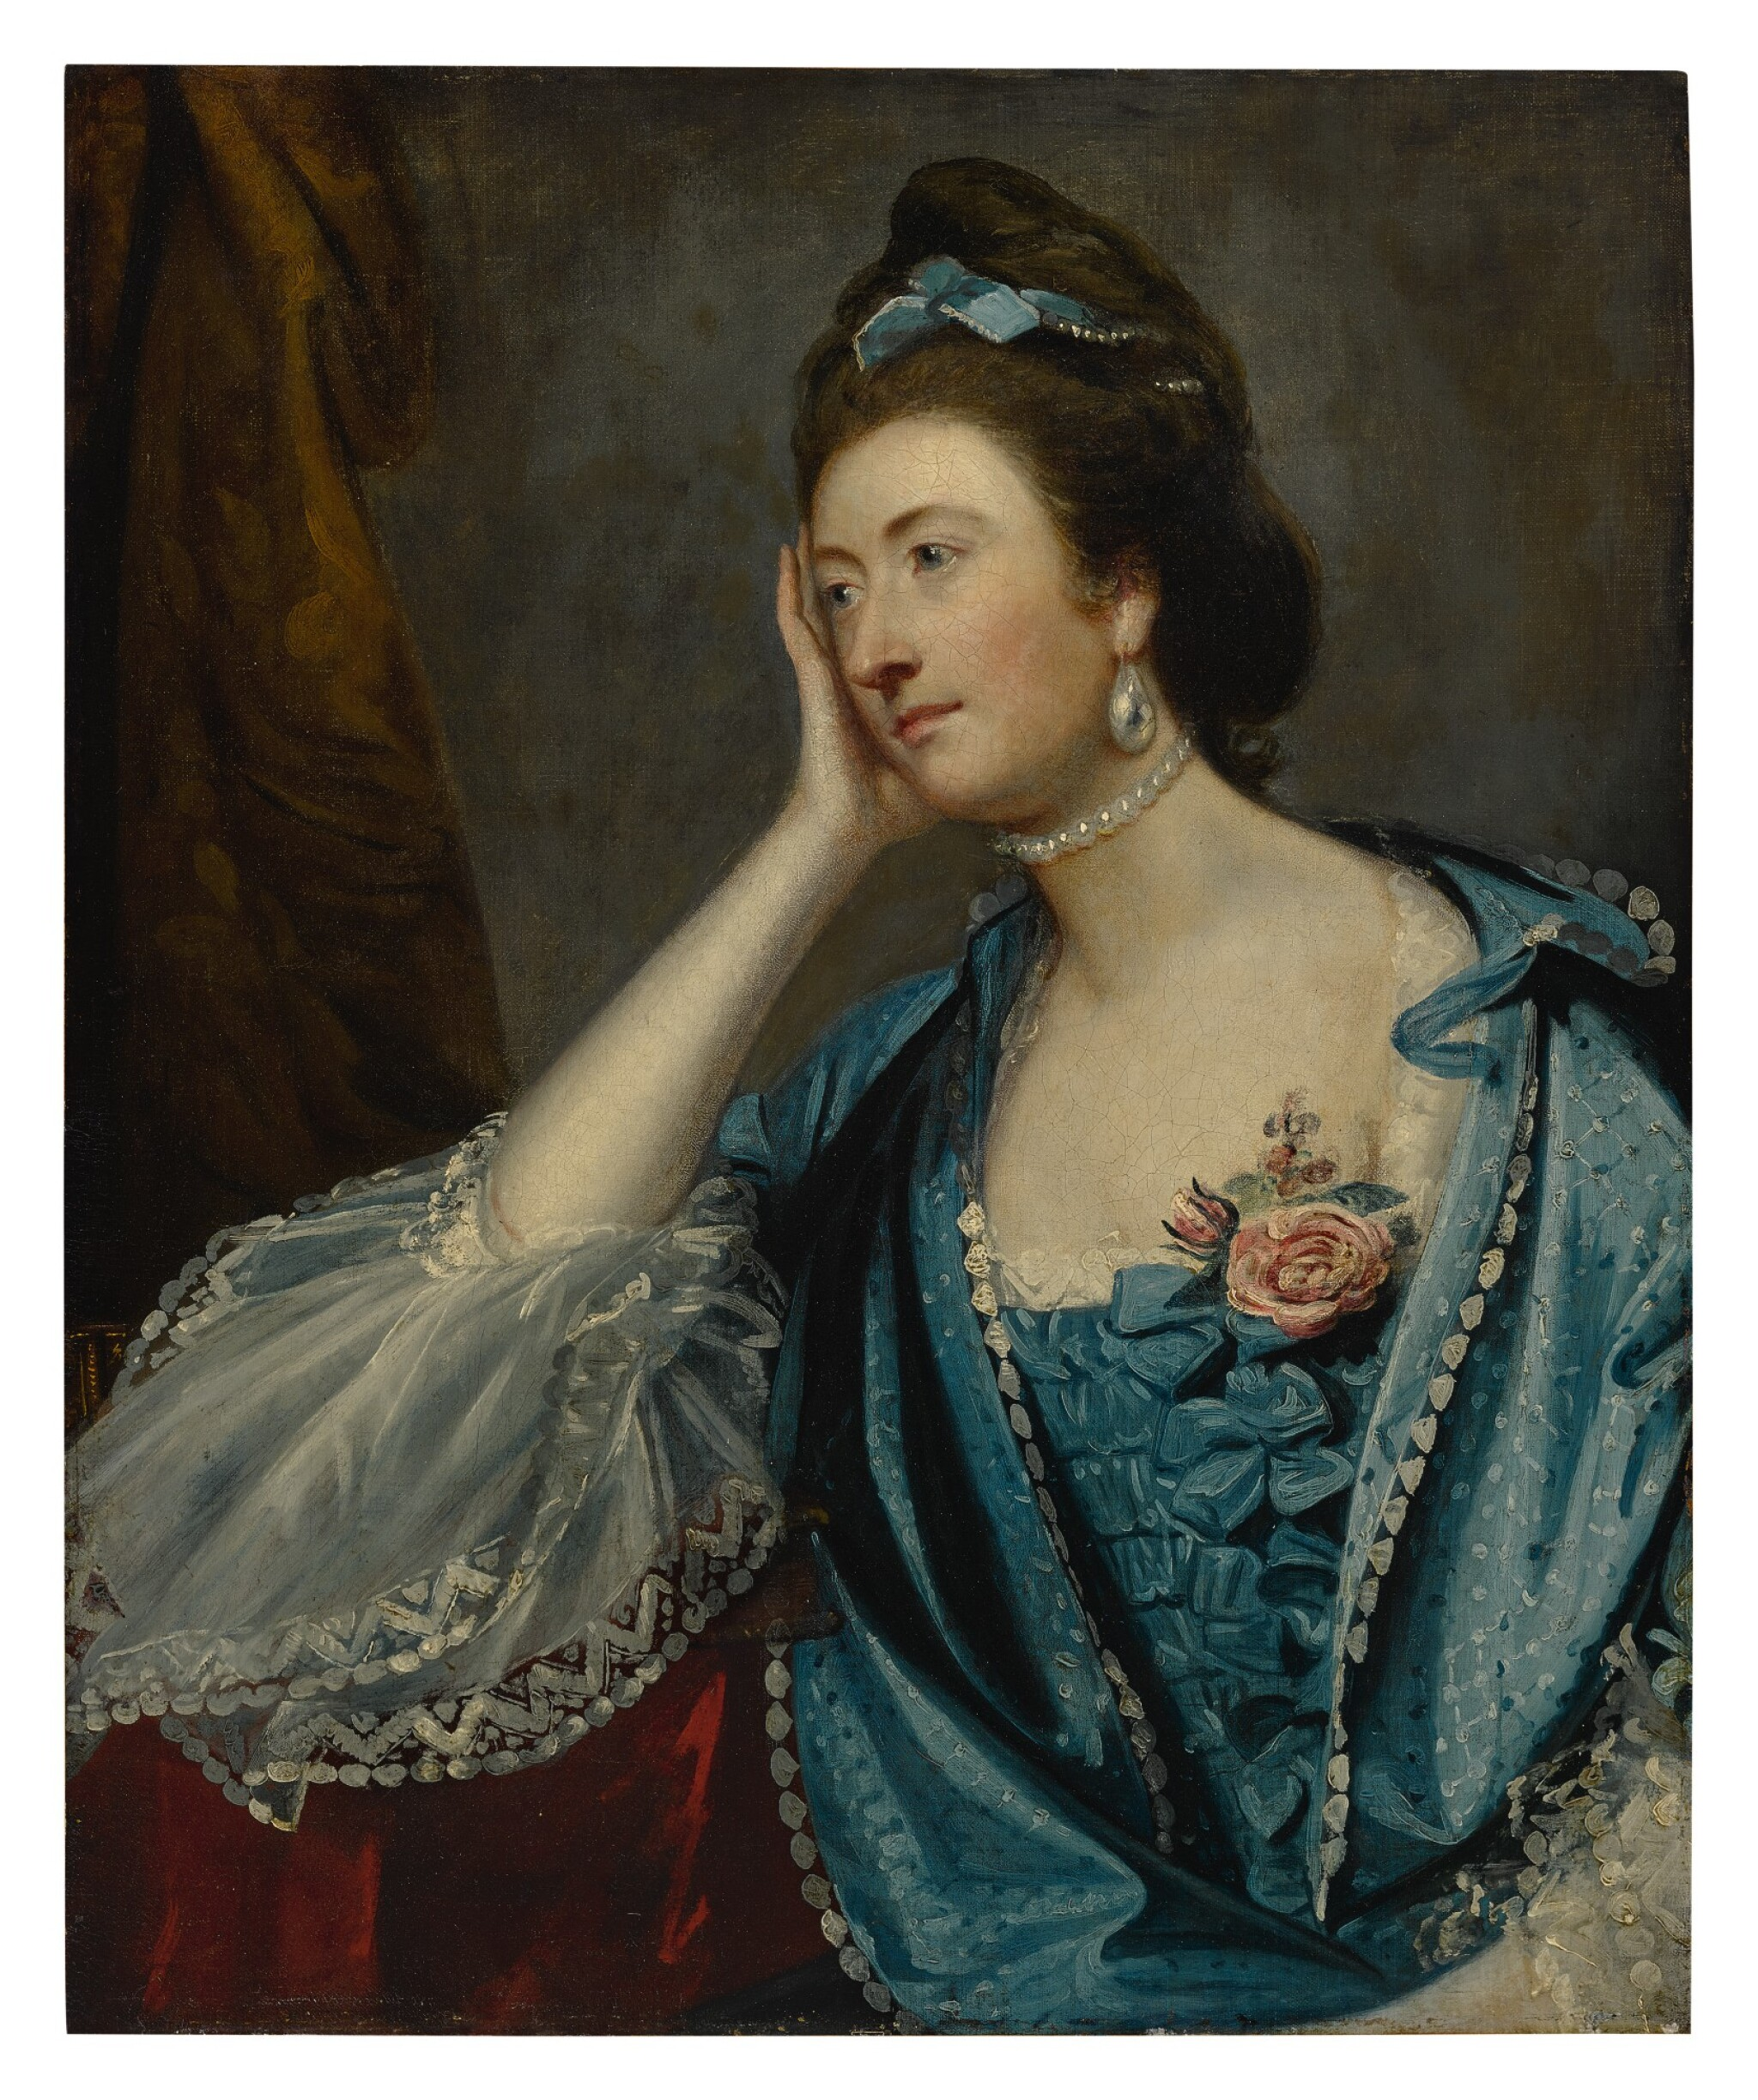 View full screen - View 1 of Lot 642. SIR JOSHUA REYNOLDS P.R.A. | PORTRAIT OF A LADY, PROBABLY MISS JANE ASHTON, HALF LENGTH, IN A BLUE DRESS WITH WHITE LACE CUFFS.